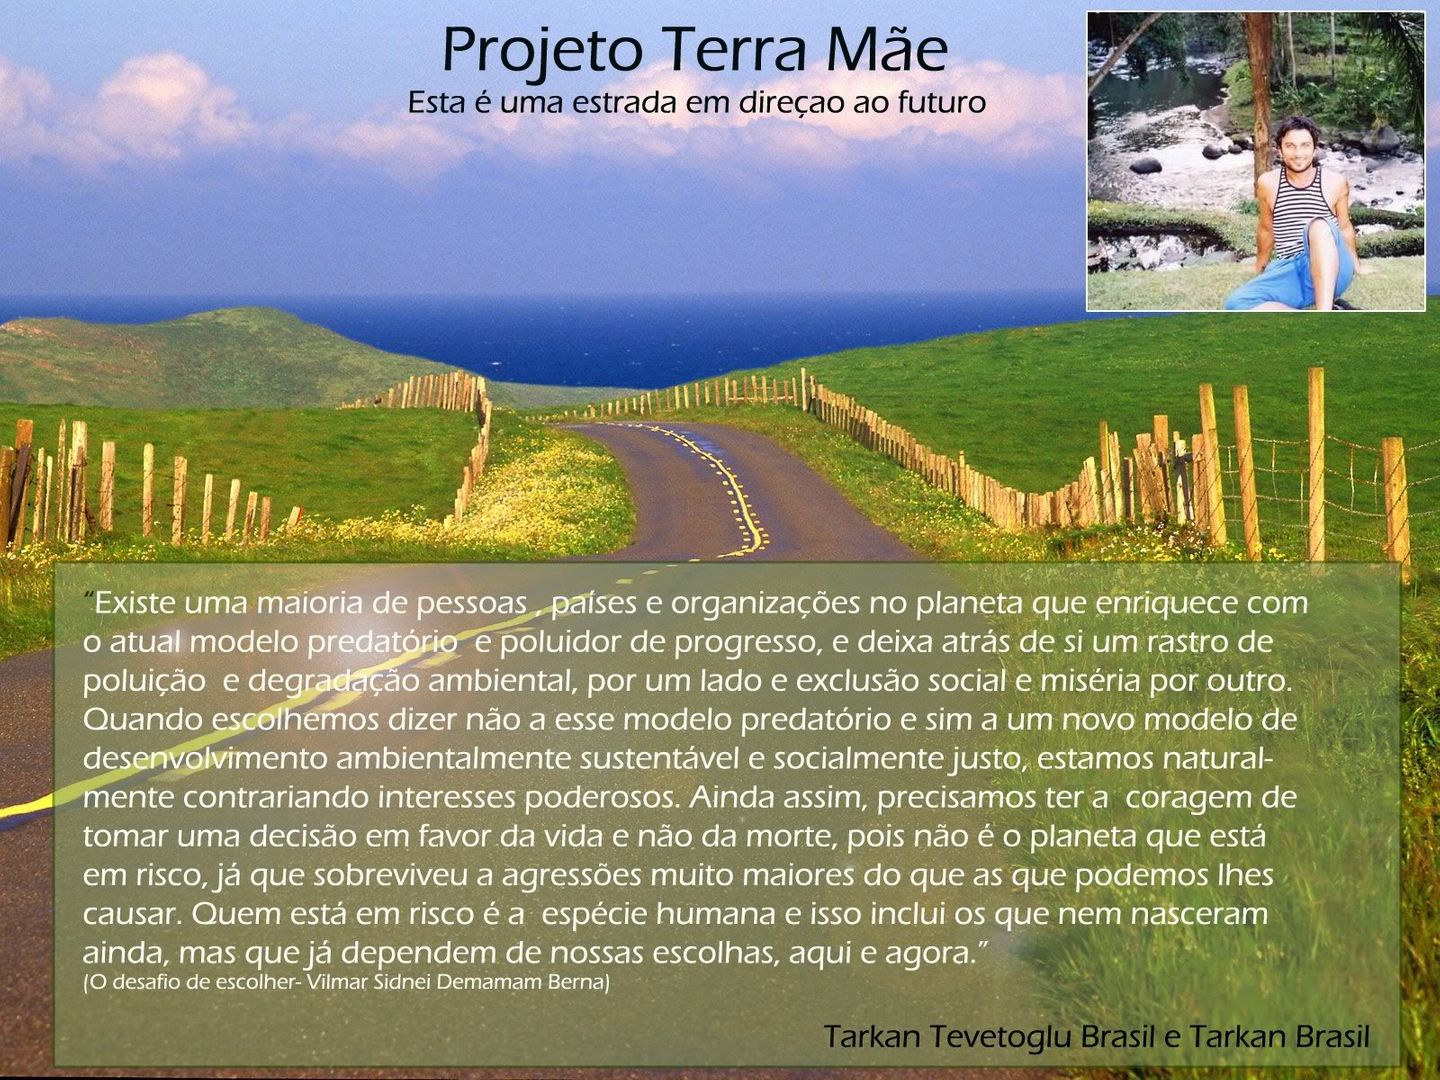 MOTHER EARTH PROJECT BANNERS ProjetoTerraMe-TTB_-1